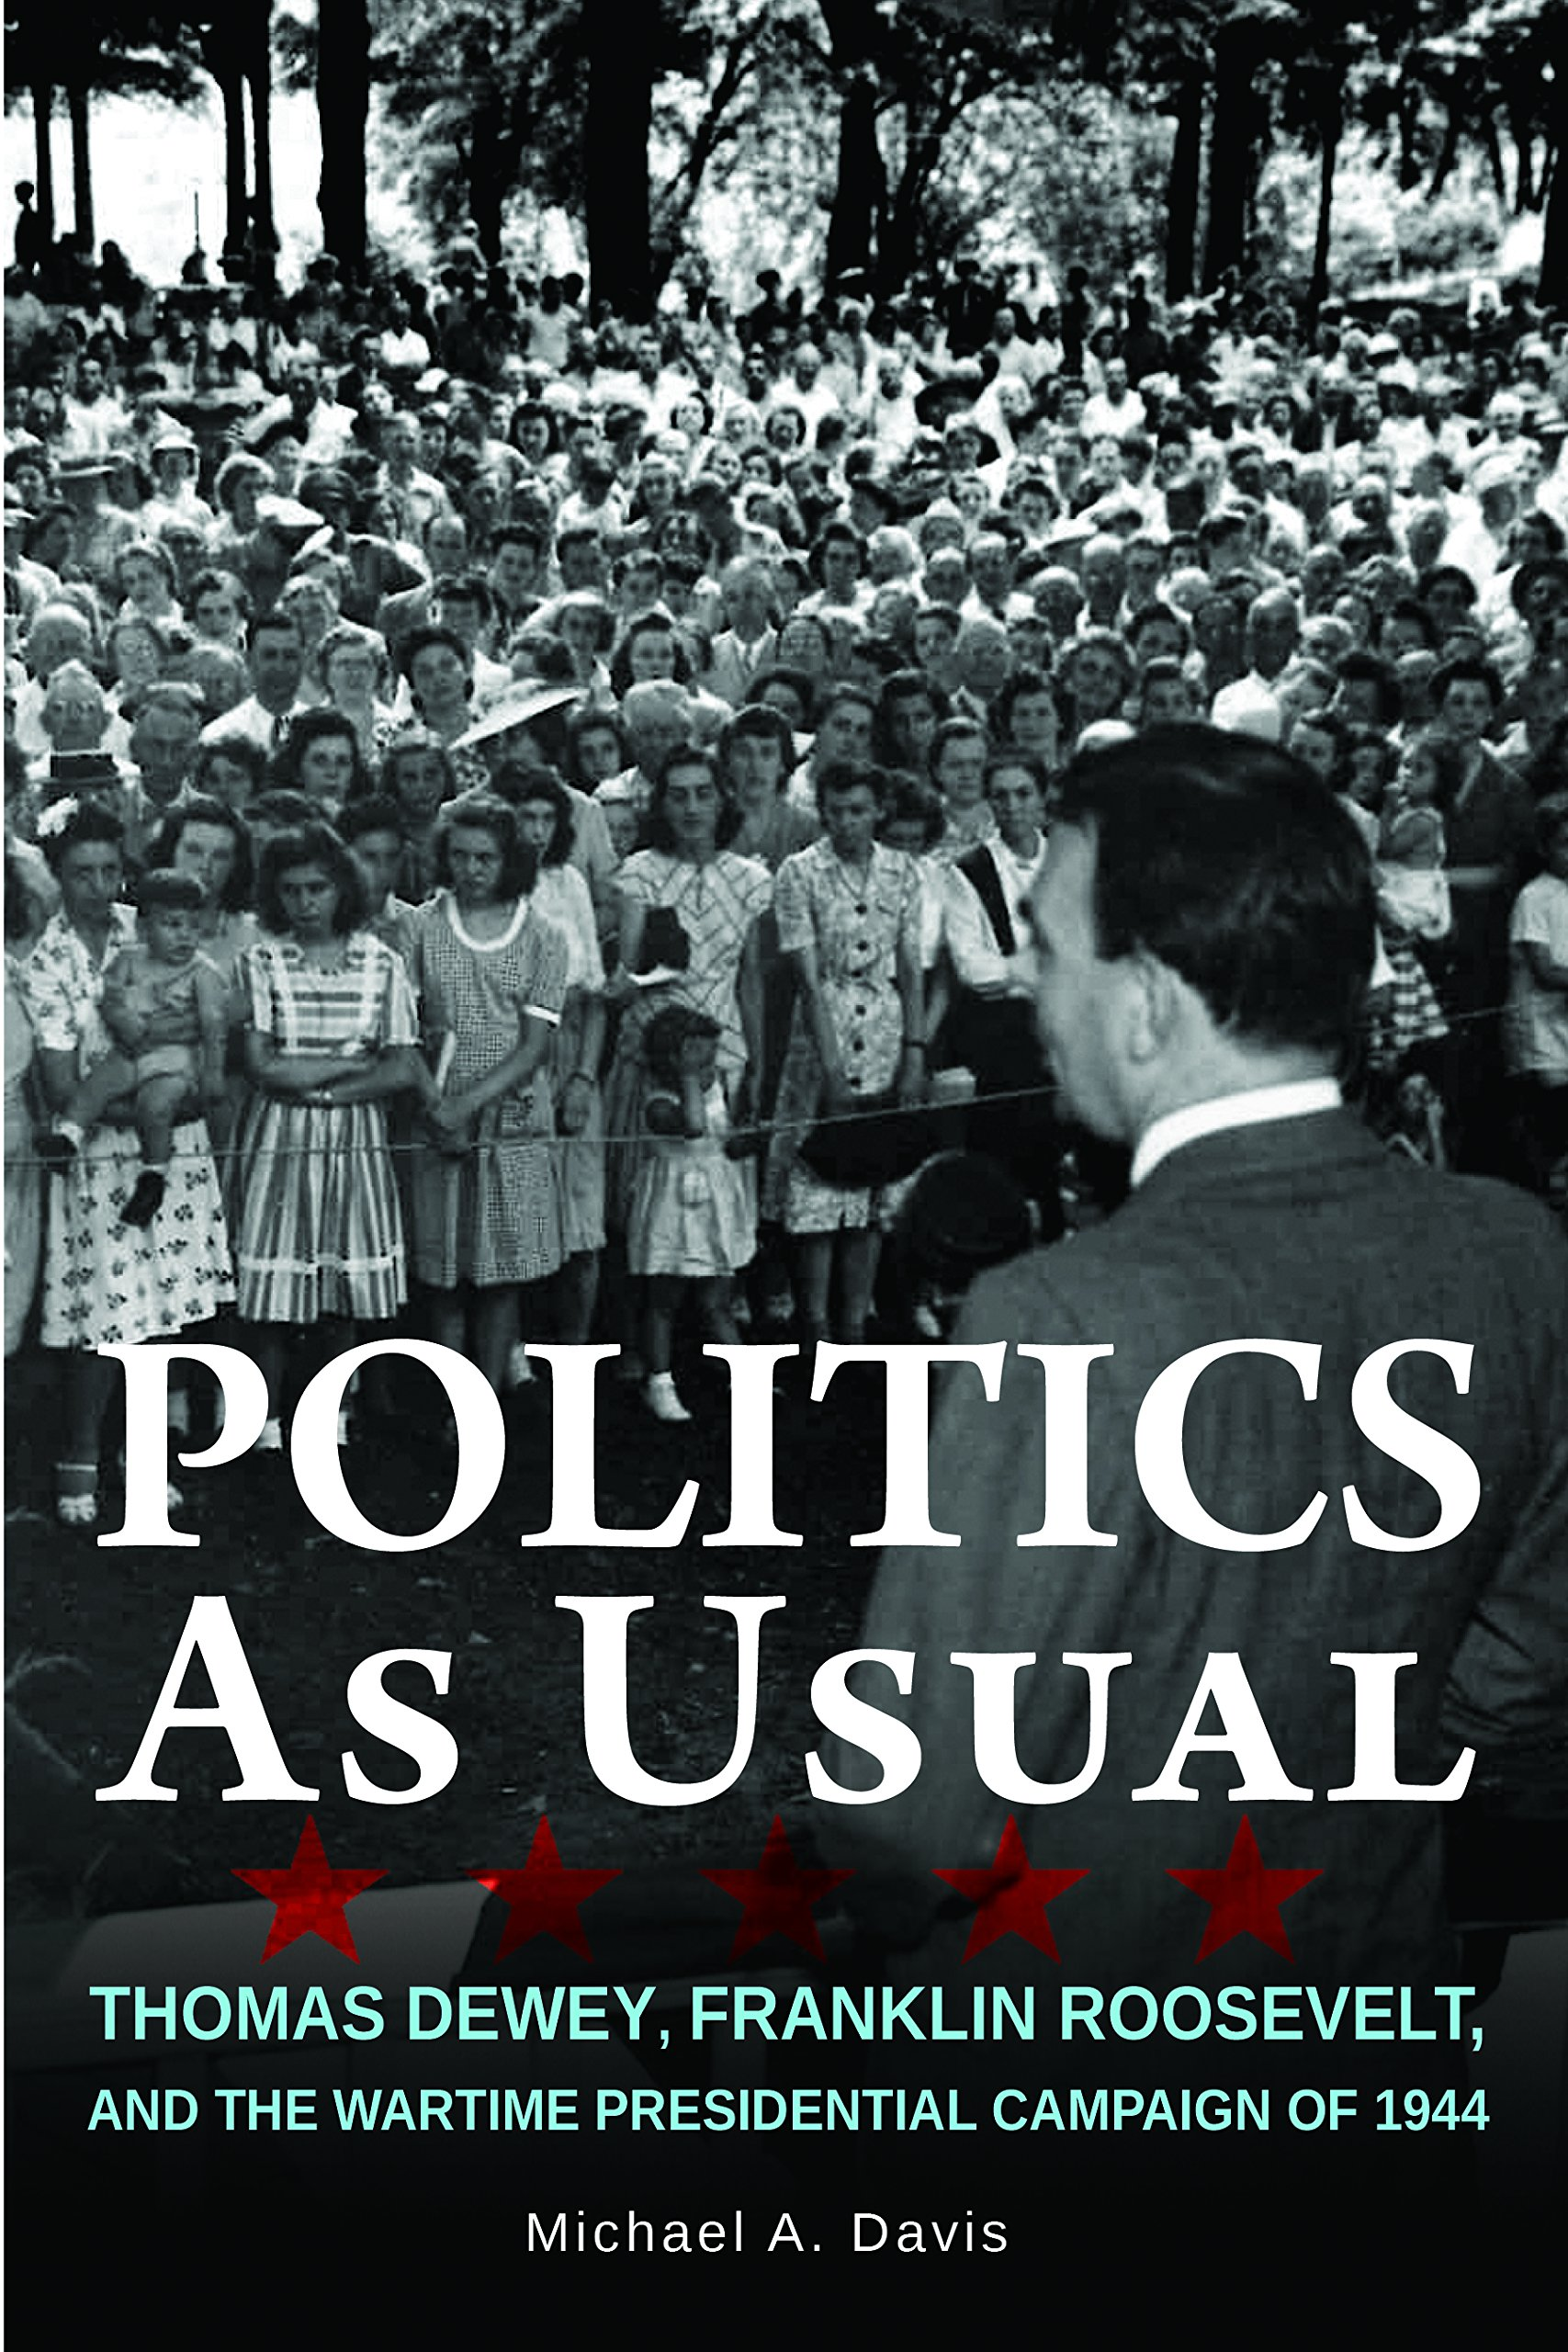 Politics as Usual: Thomas Dewey, Franklin Roosevelt, and the Wartime Presidential campaign of 1944 PDF